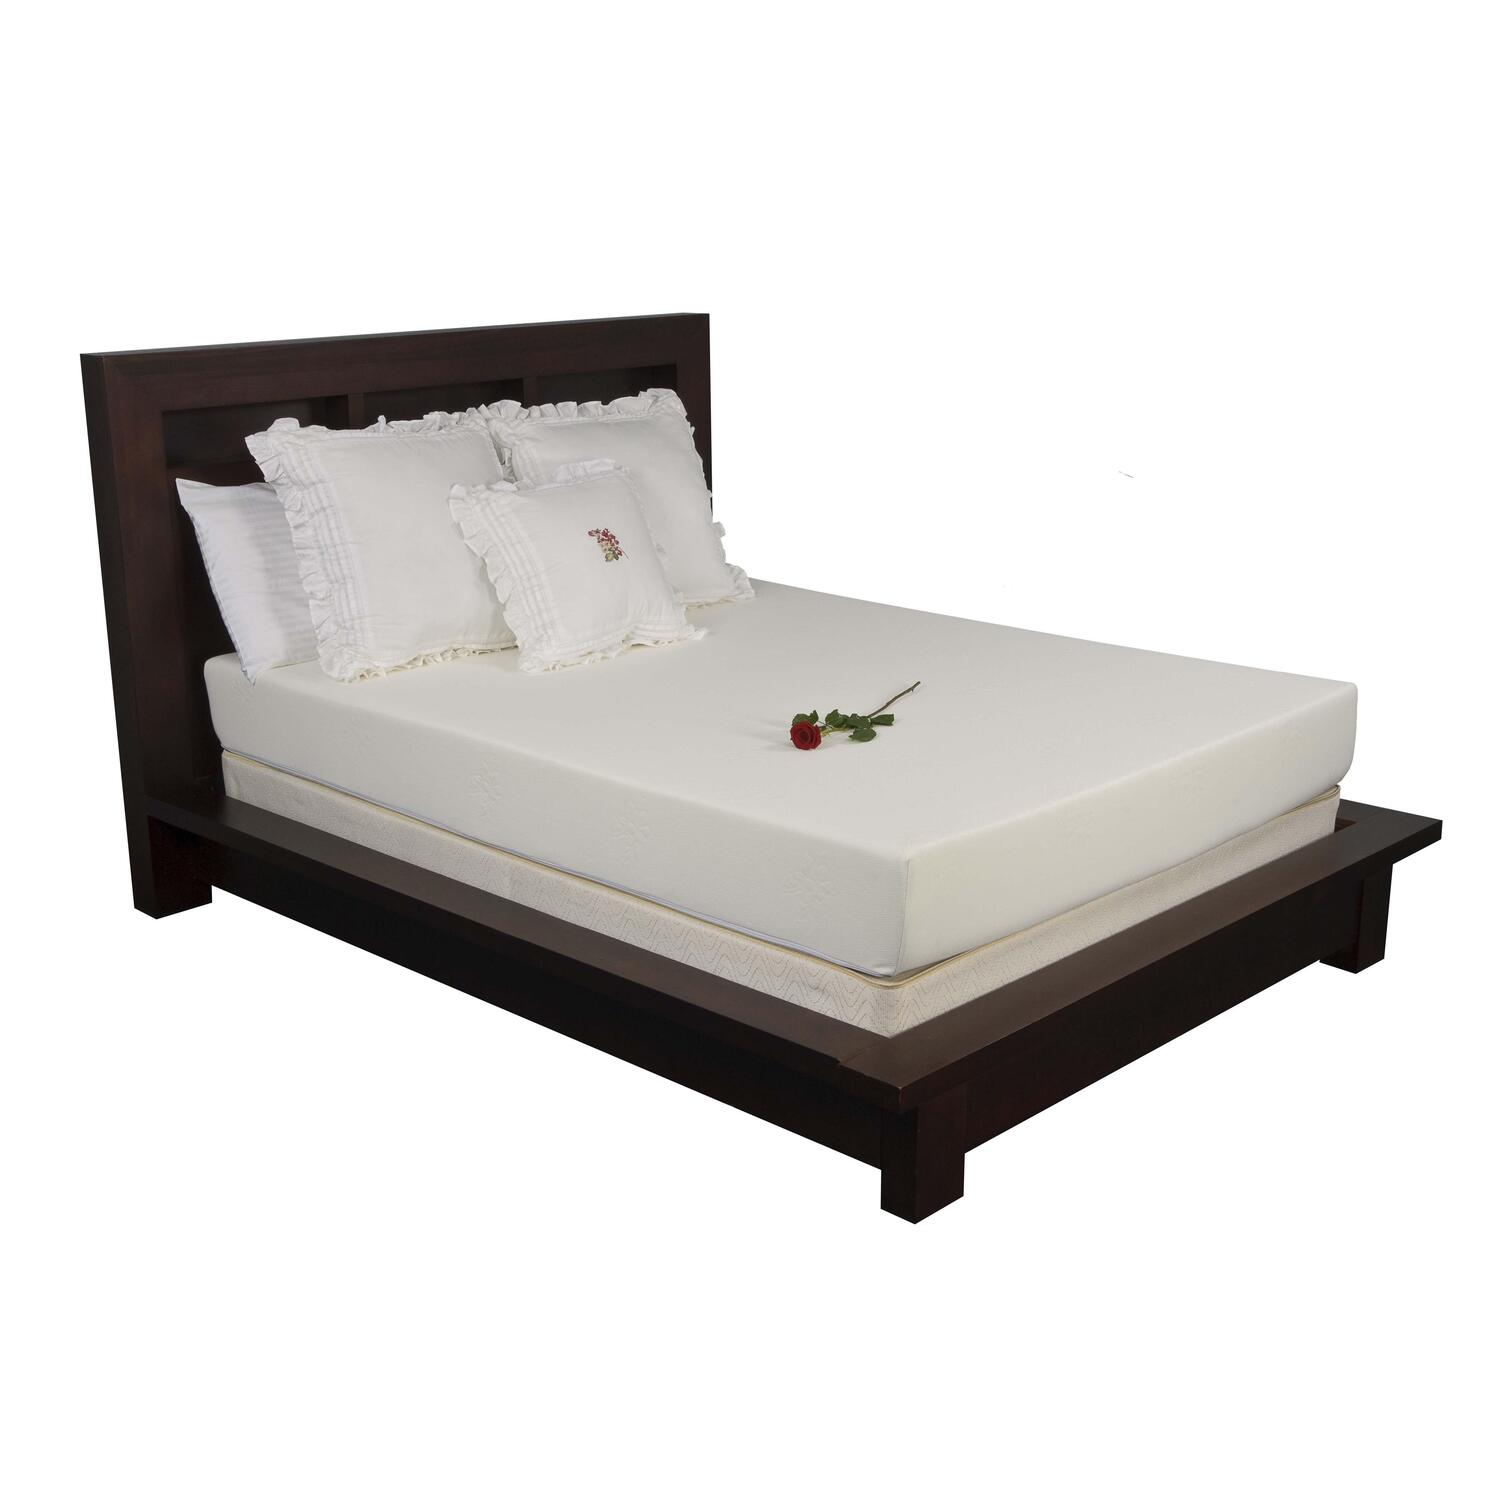 California king memory foam mattress Memory foam king mattress